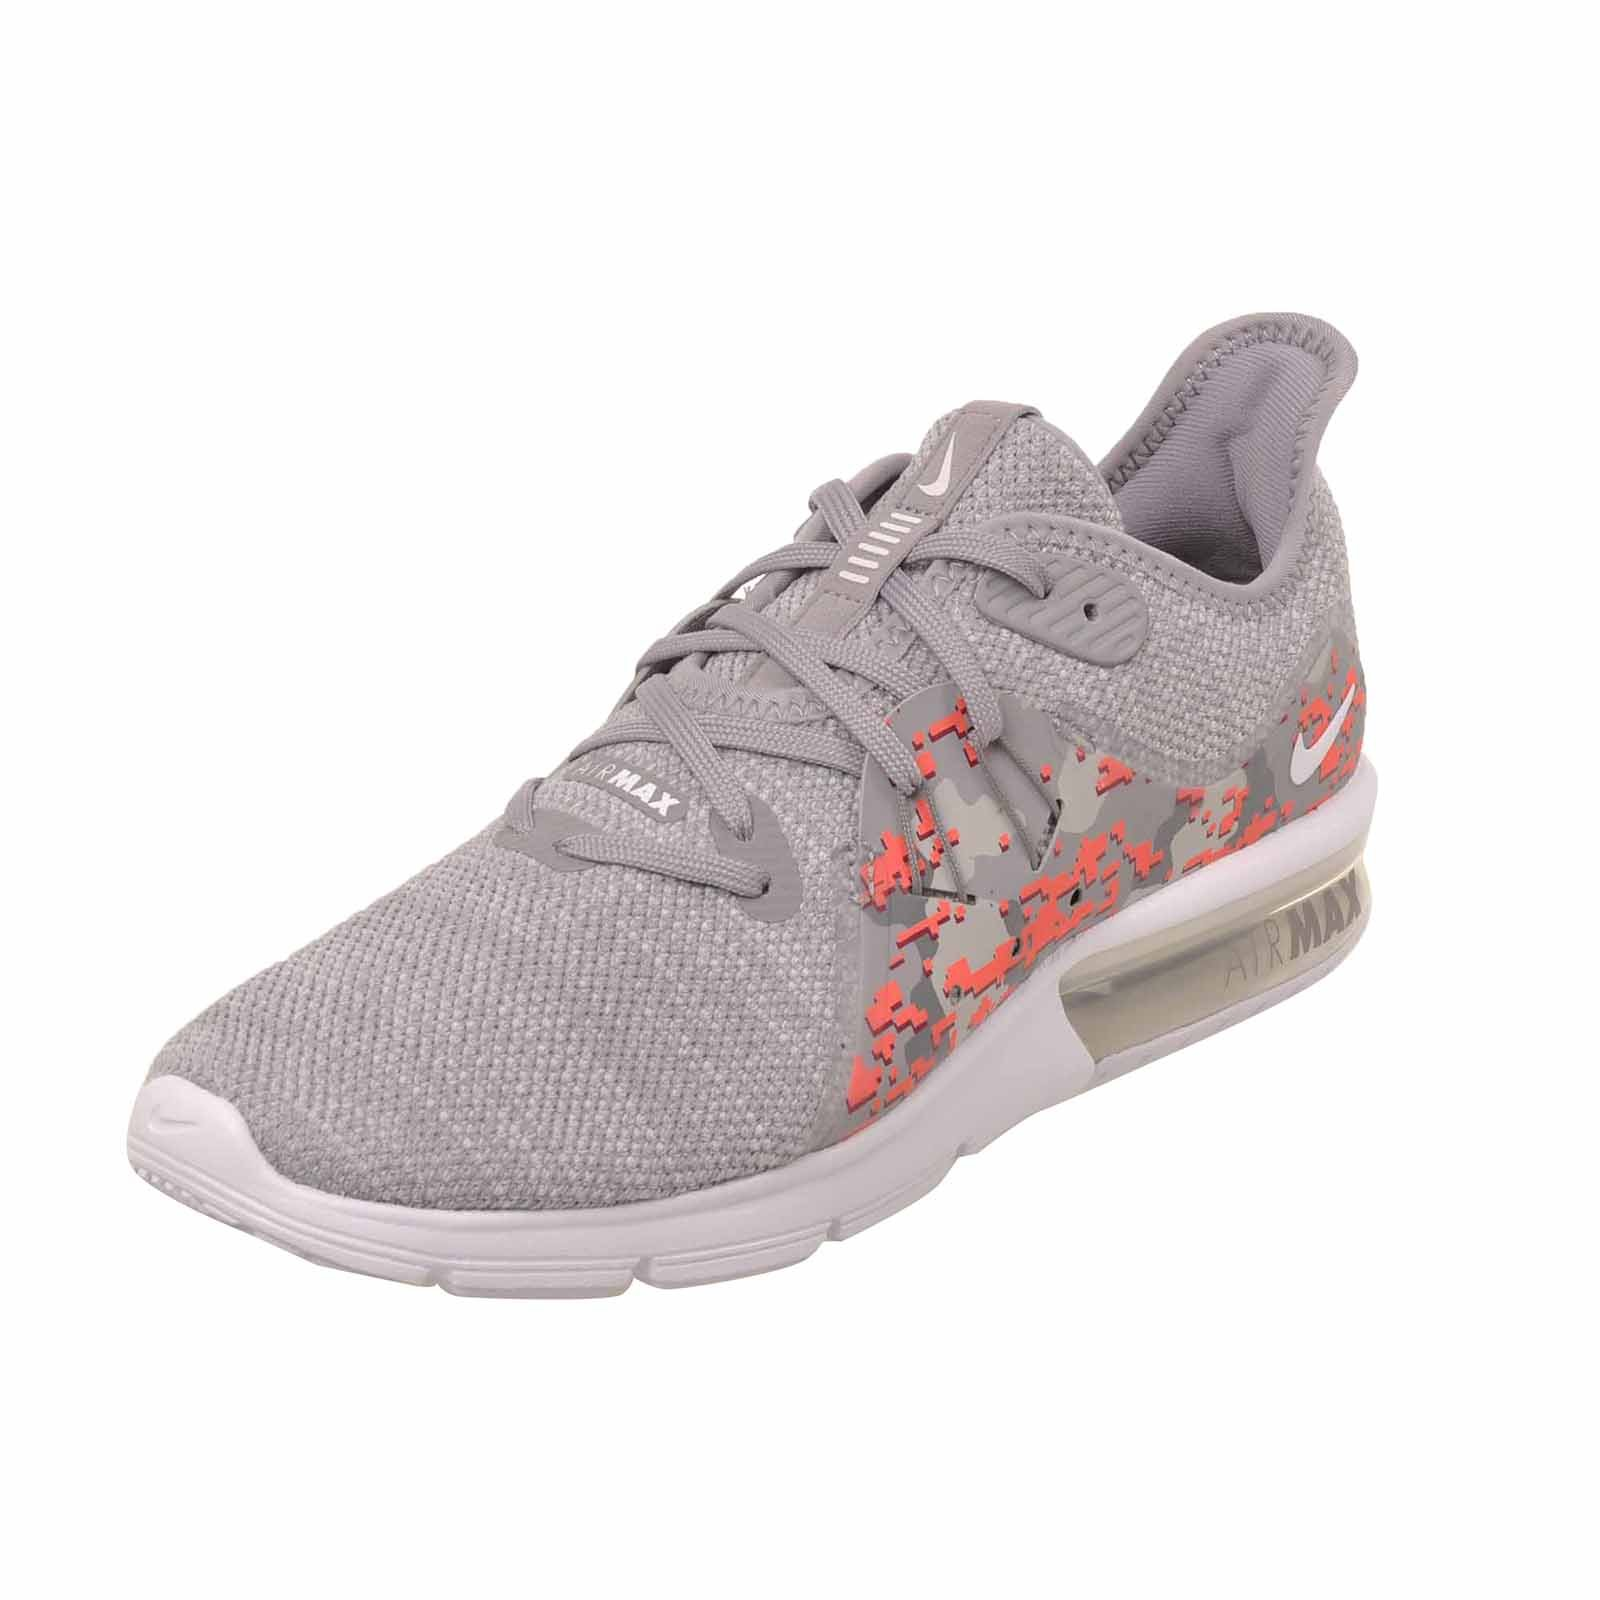 ed35c891d275f Nike Women's Air Max Sequent 3 C Running Shoes (9.5 M US, White/Vast Grey)